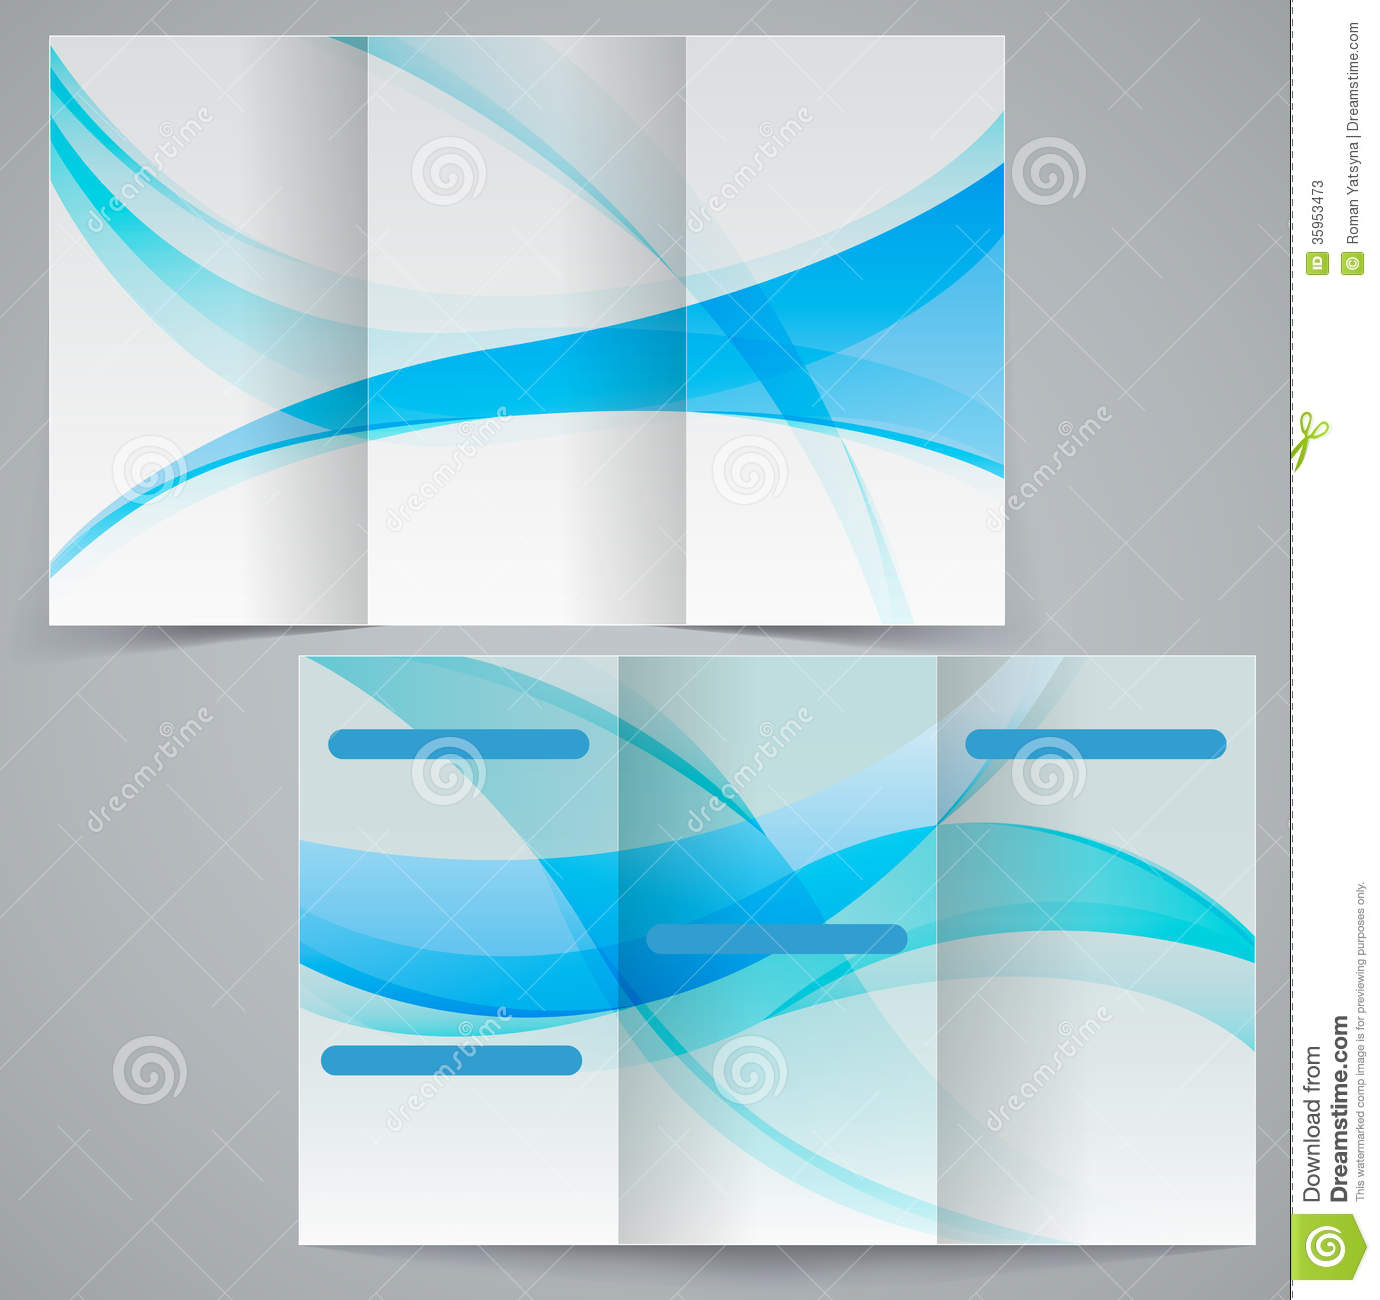 Tri fold business brochure template vector blue d stock for Free template brochure design